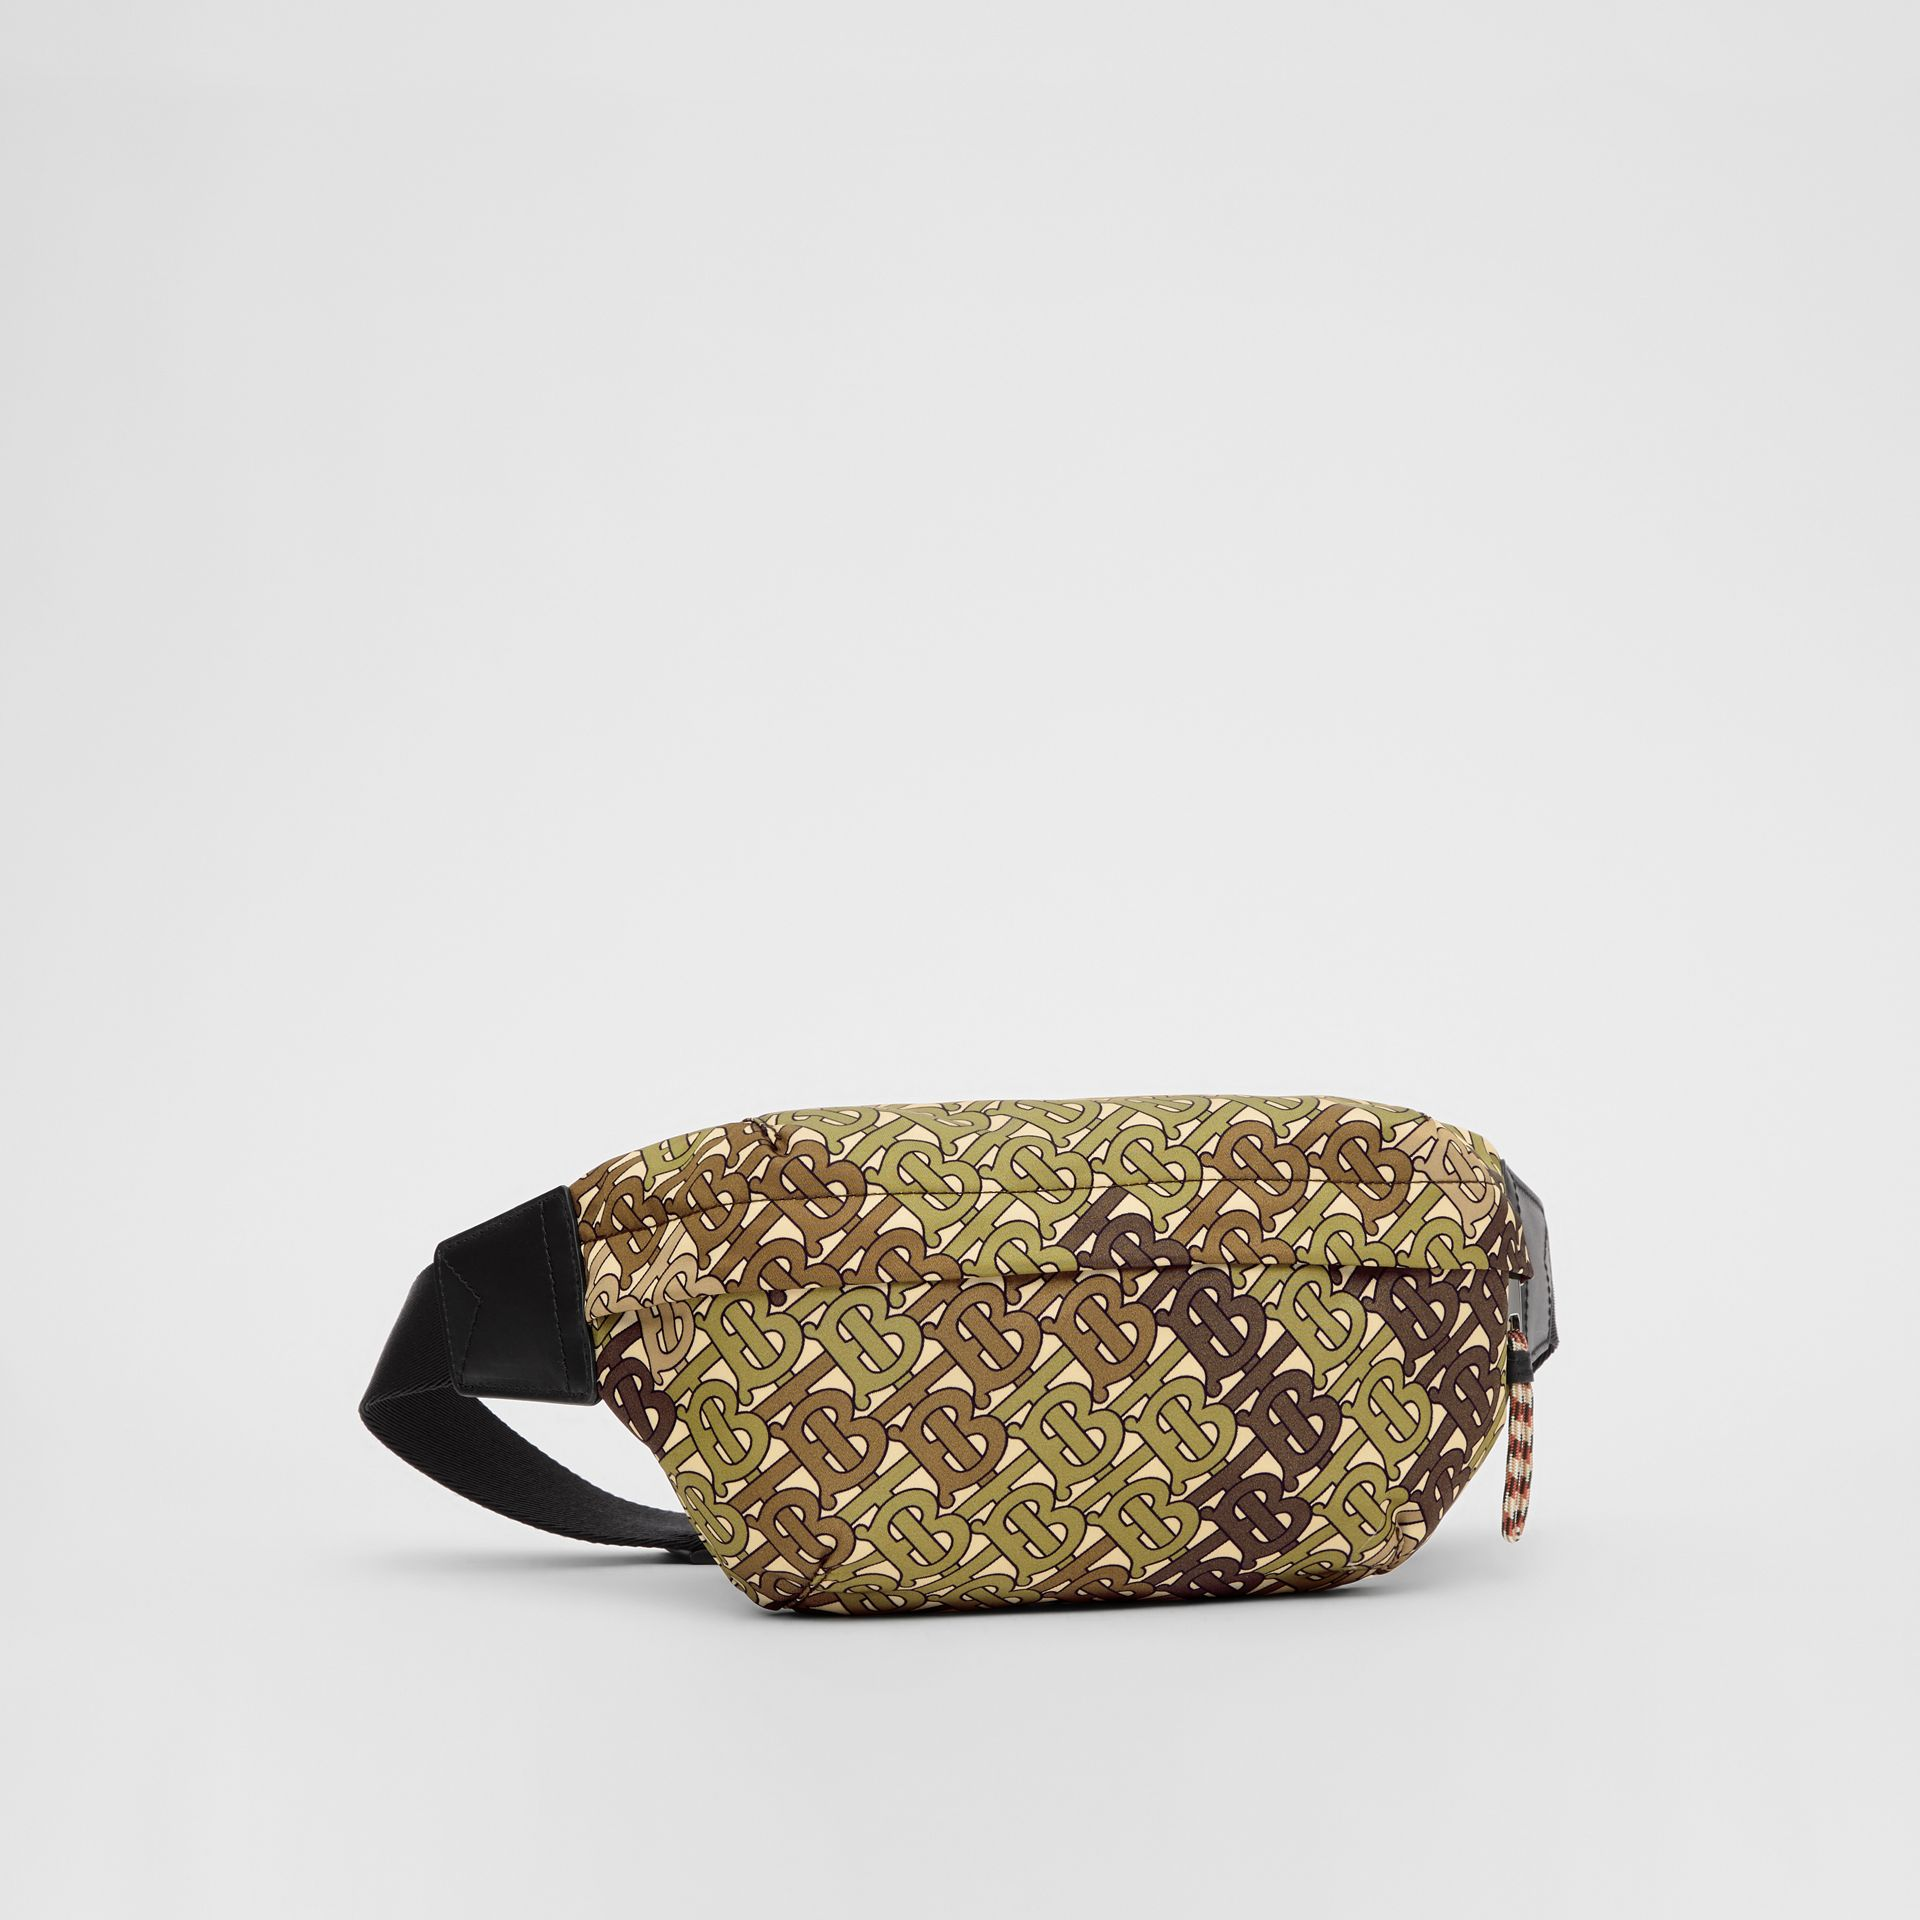 Medium Monogram Print Bum Bag in Khaki Green | Burberry Singapore - gallery image 8